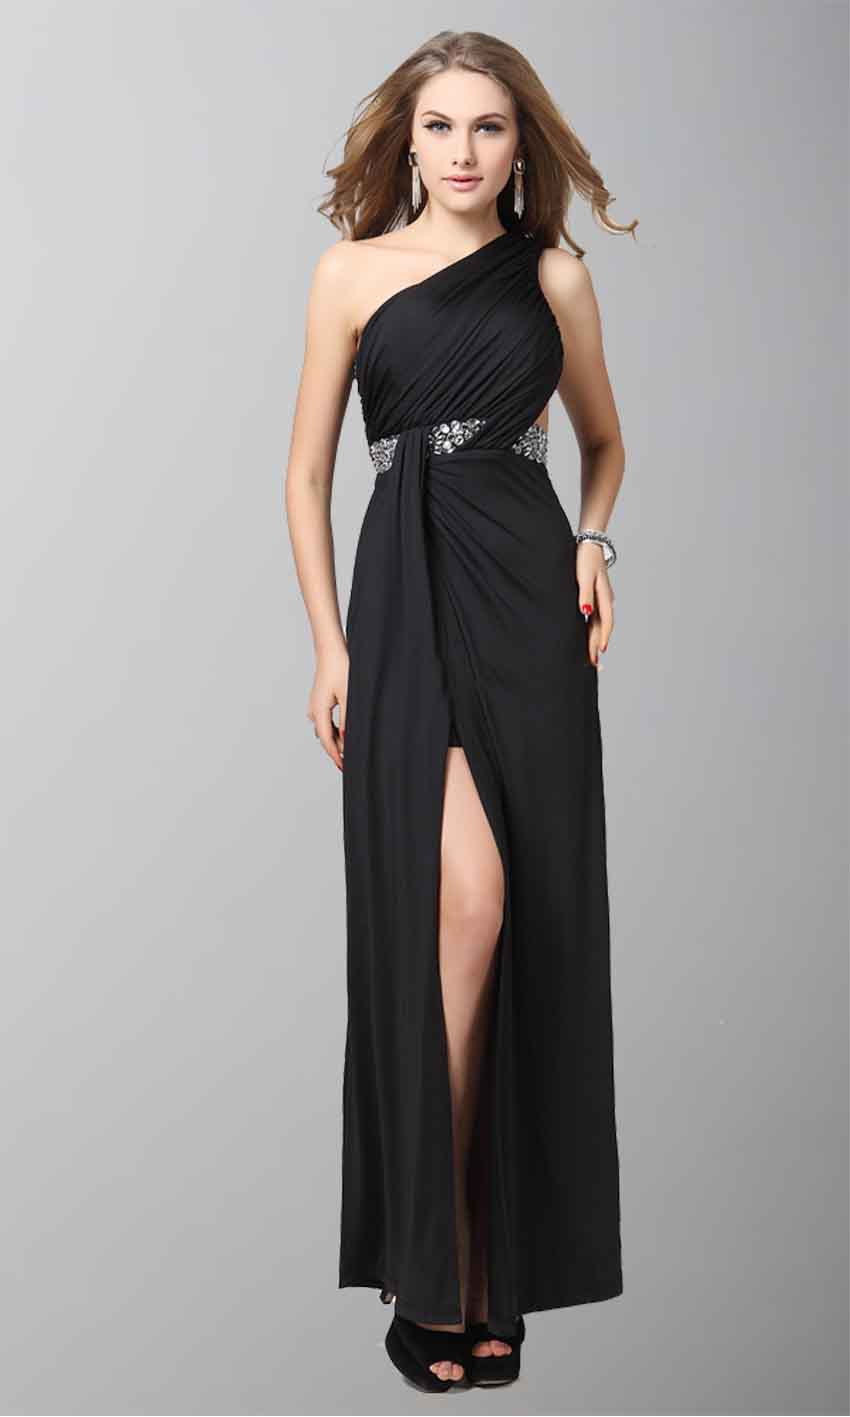 Agreeable Black One Shoulder Split Formal Dresses KSP049 [KSP049] - £98.00 : Cheap Prom Dresses Uk, Bridesmaid Dresses, 2014 Prom & Evening Dresses, Look for cheap elegant prom dresses 2014, cocktail gowns, or dresses for special occasions? kissprom.co.uk offers various bridesmaid dresses, evening dress, free shipping to UK etc.